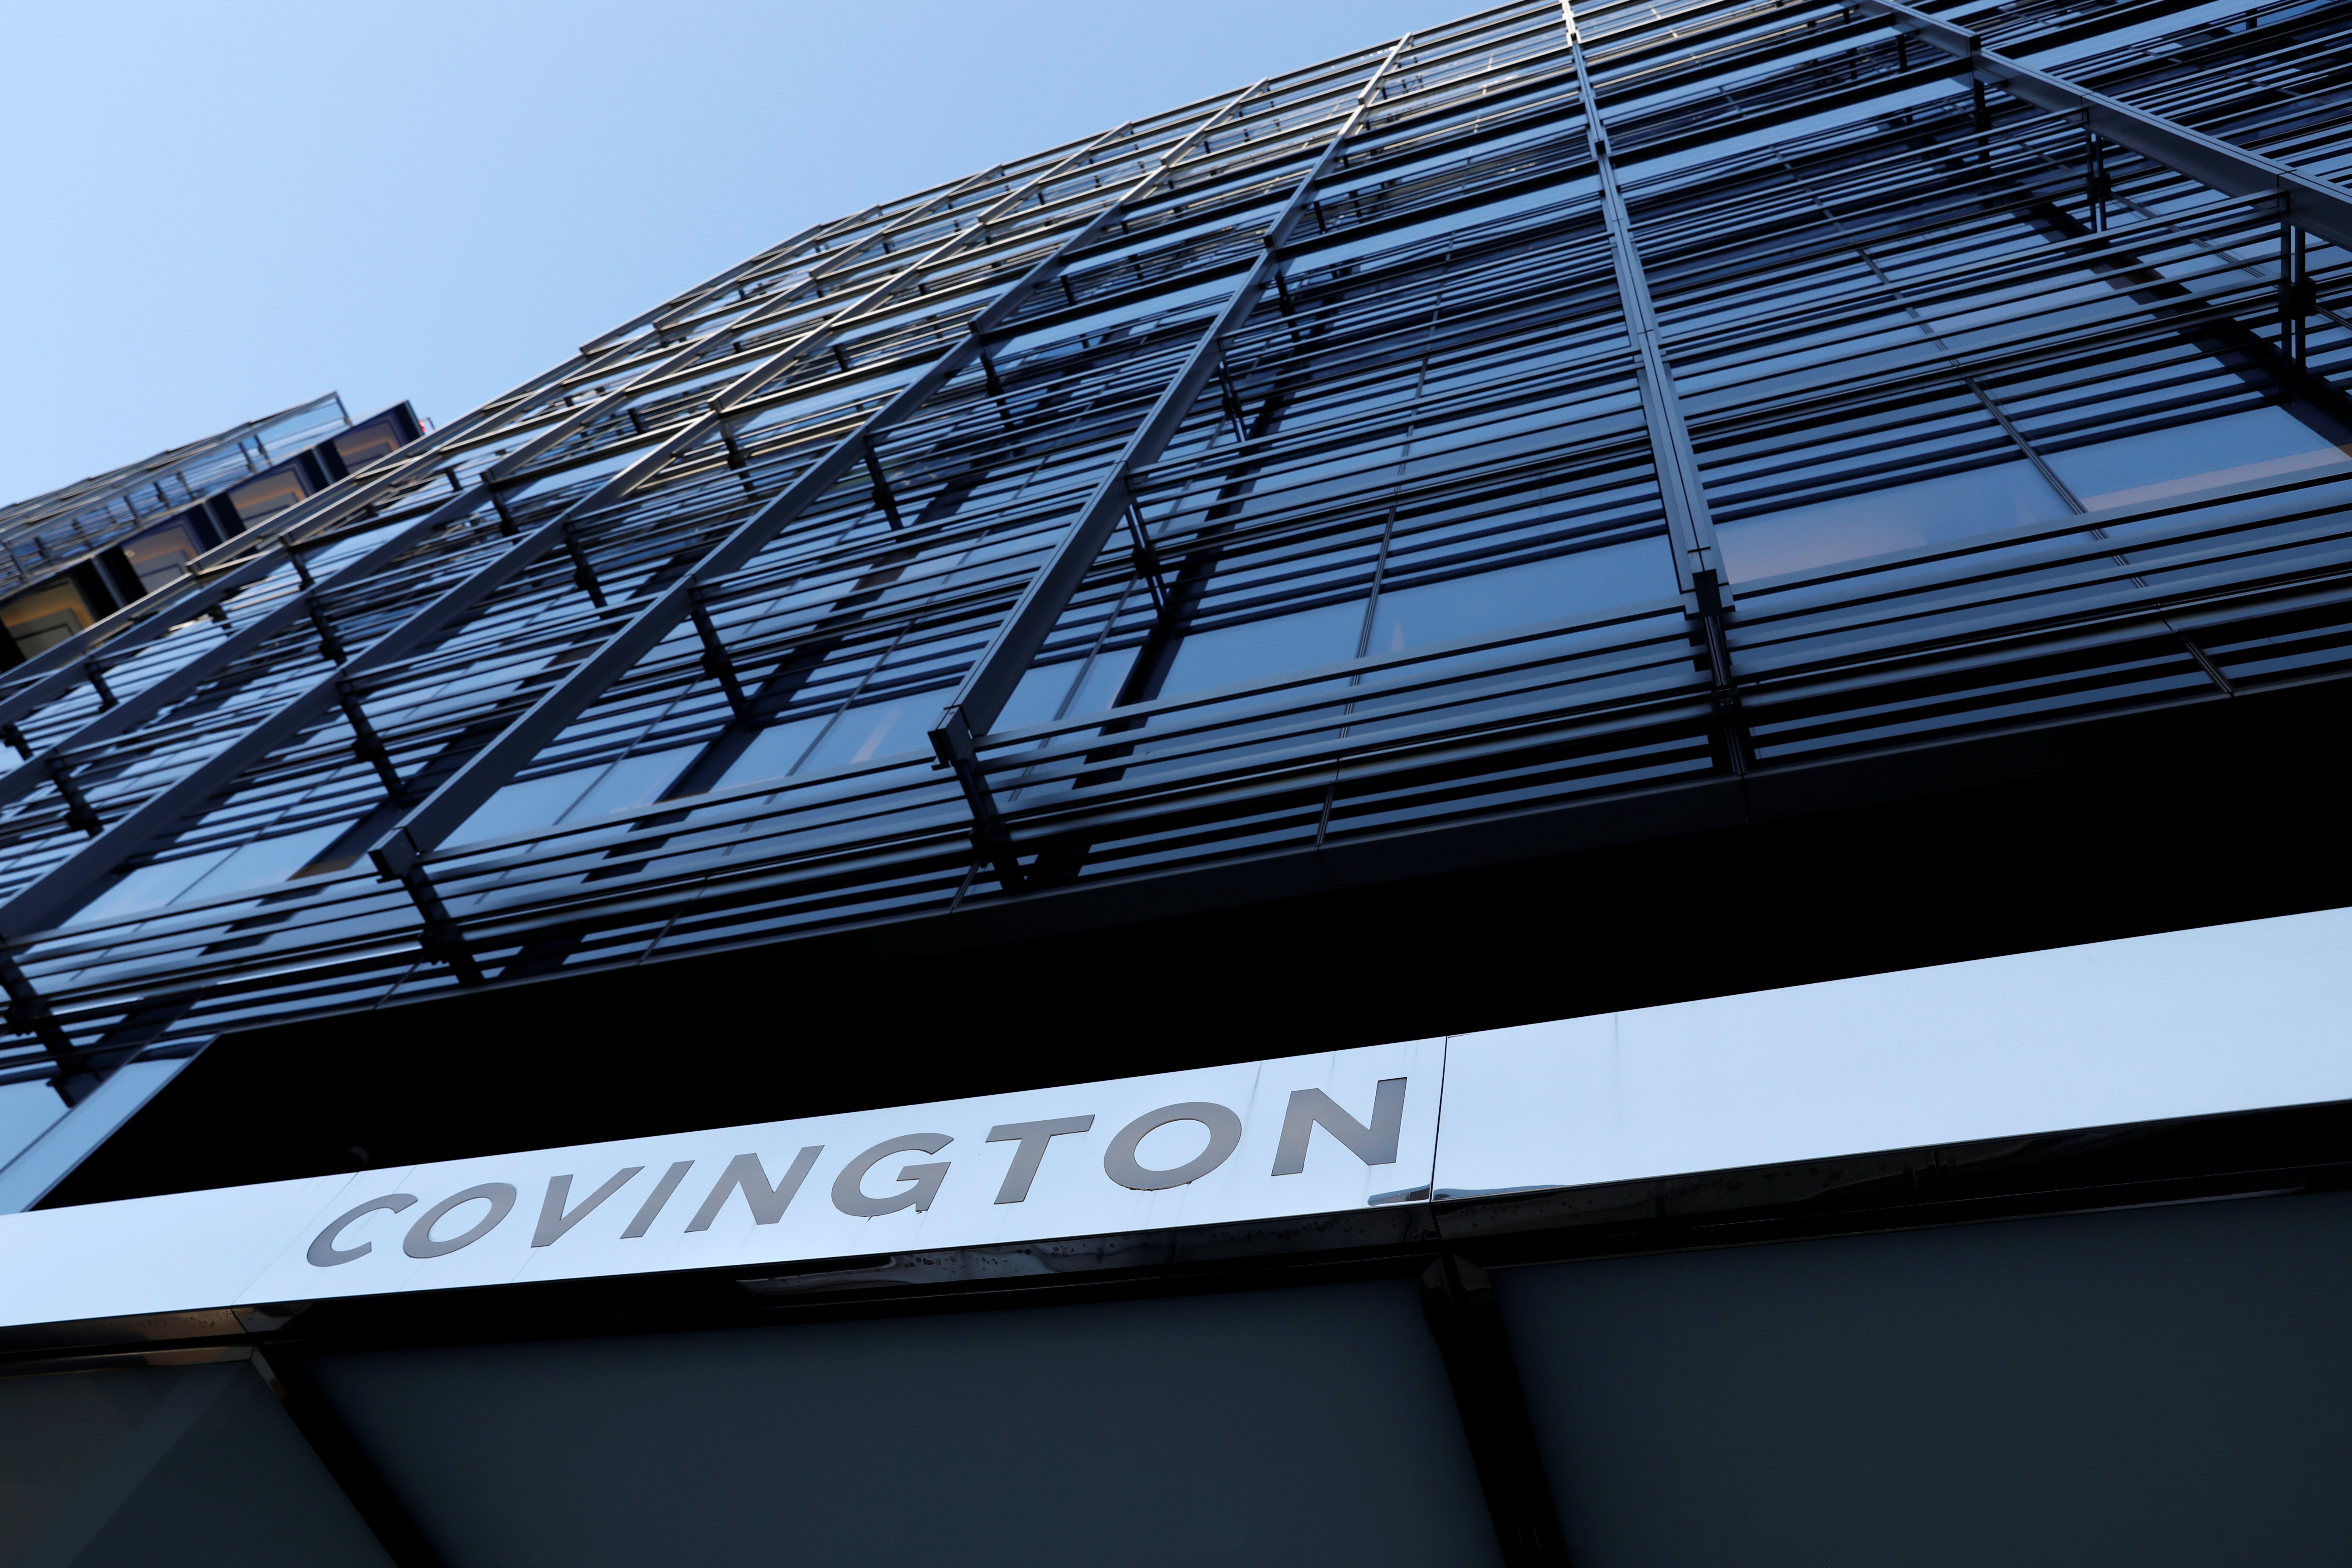 Covington & Burling offices in Washington, D.C. REUTERS/Andrew Kelly